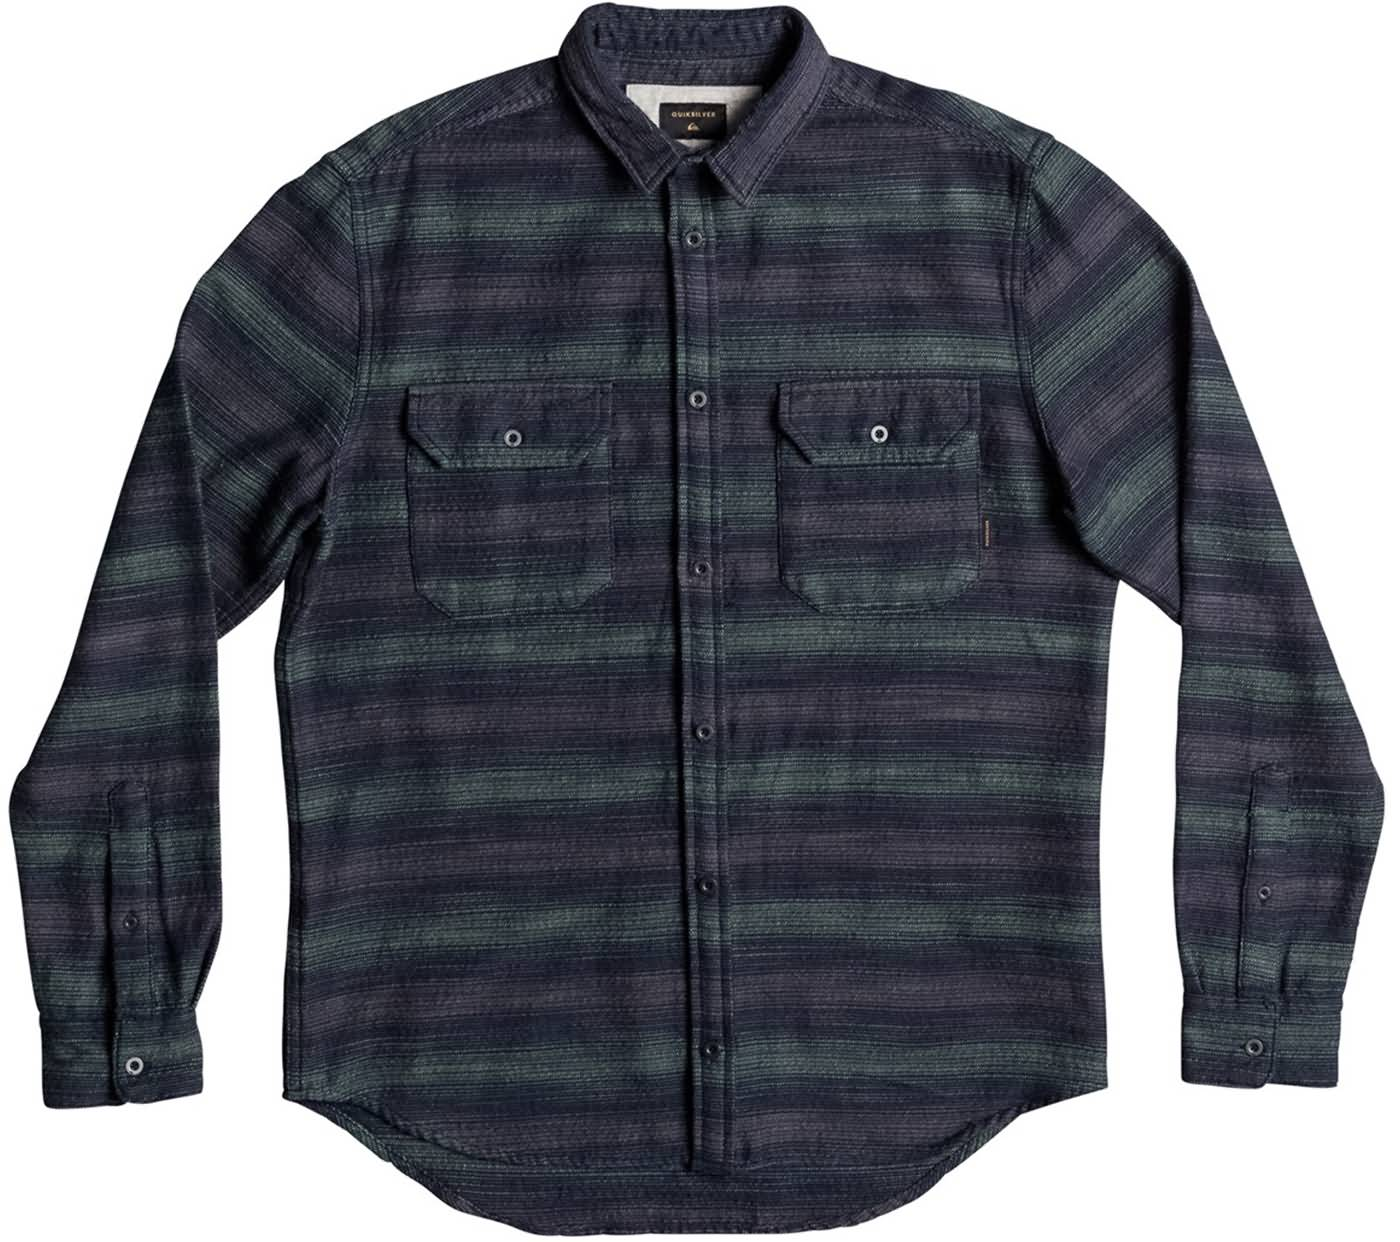 Quiksilver Surf Fall 2017 Mens Flannel Shirts Apparel Preview